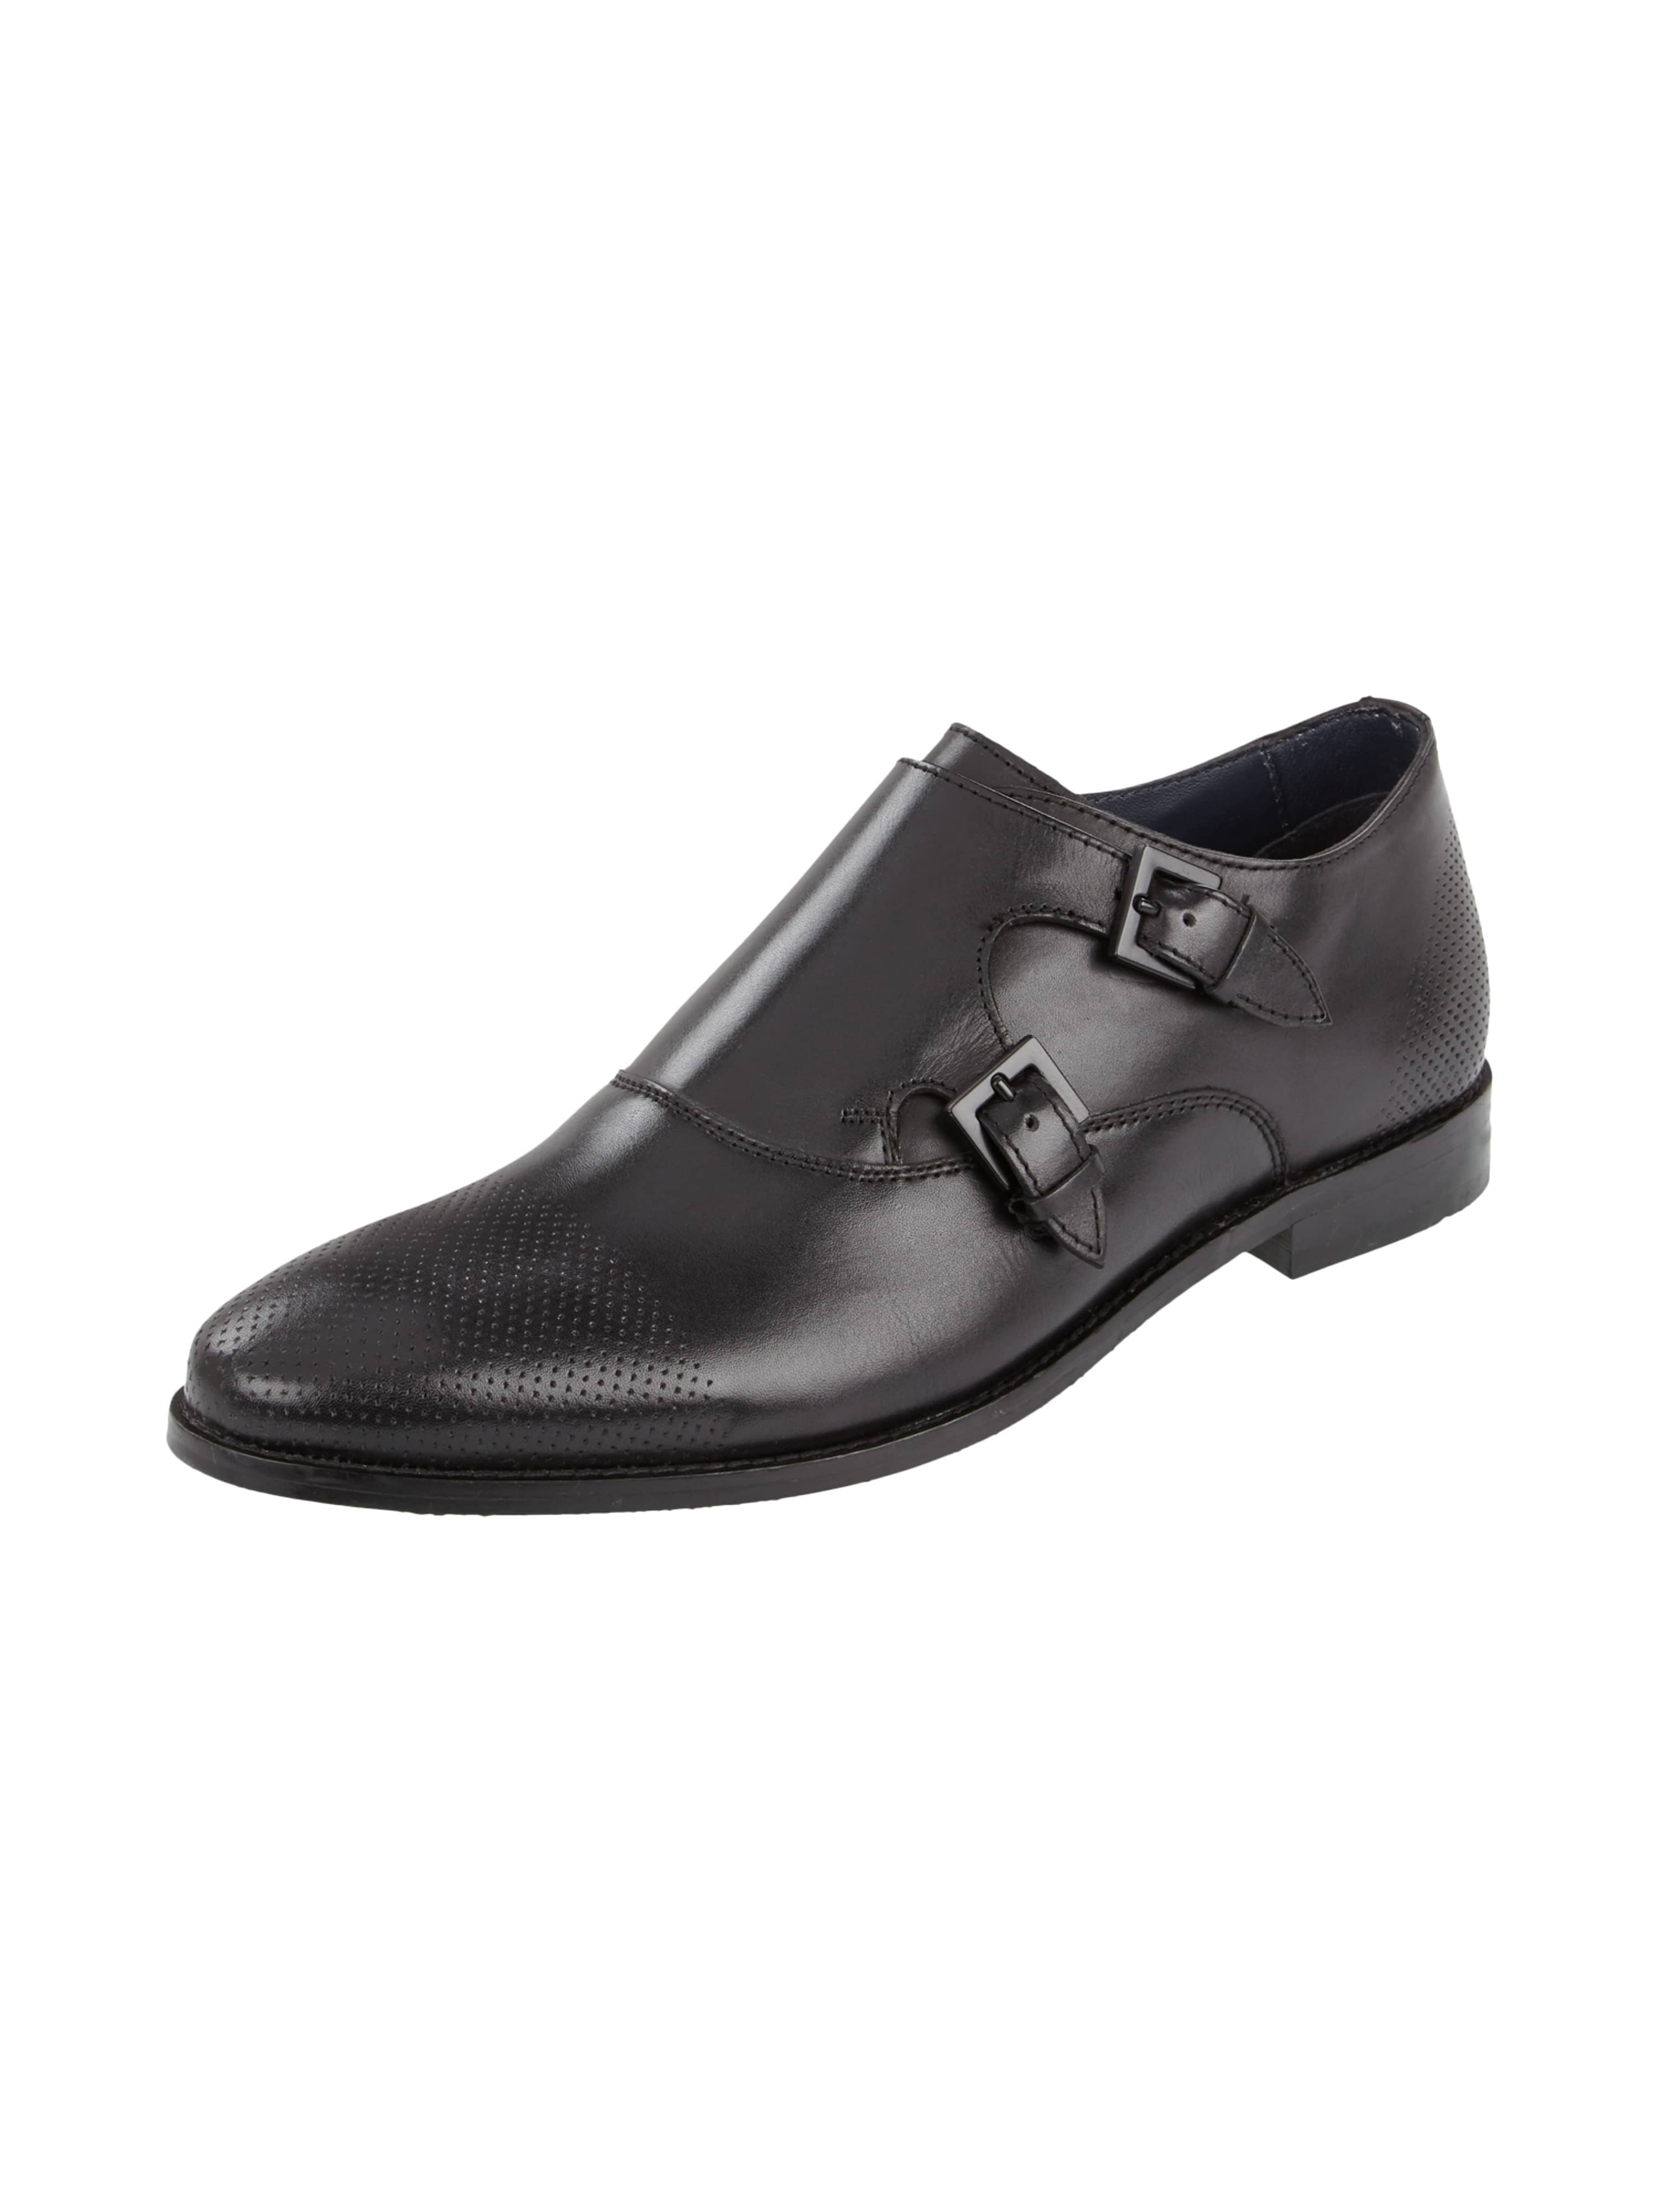 double monk straps aus echtem glattleder fashion id online shop. Black Bedroom Furniture Sets. Home Design Ideas